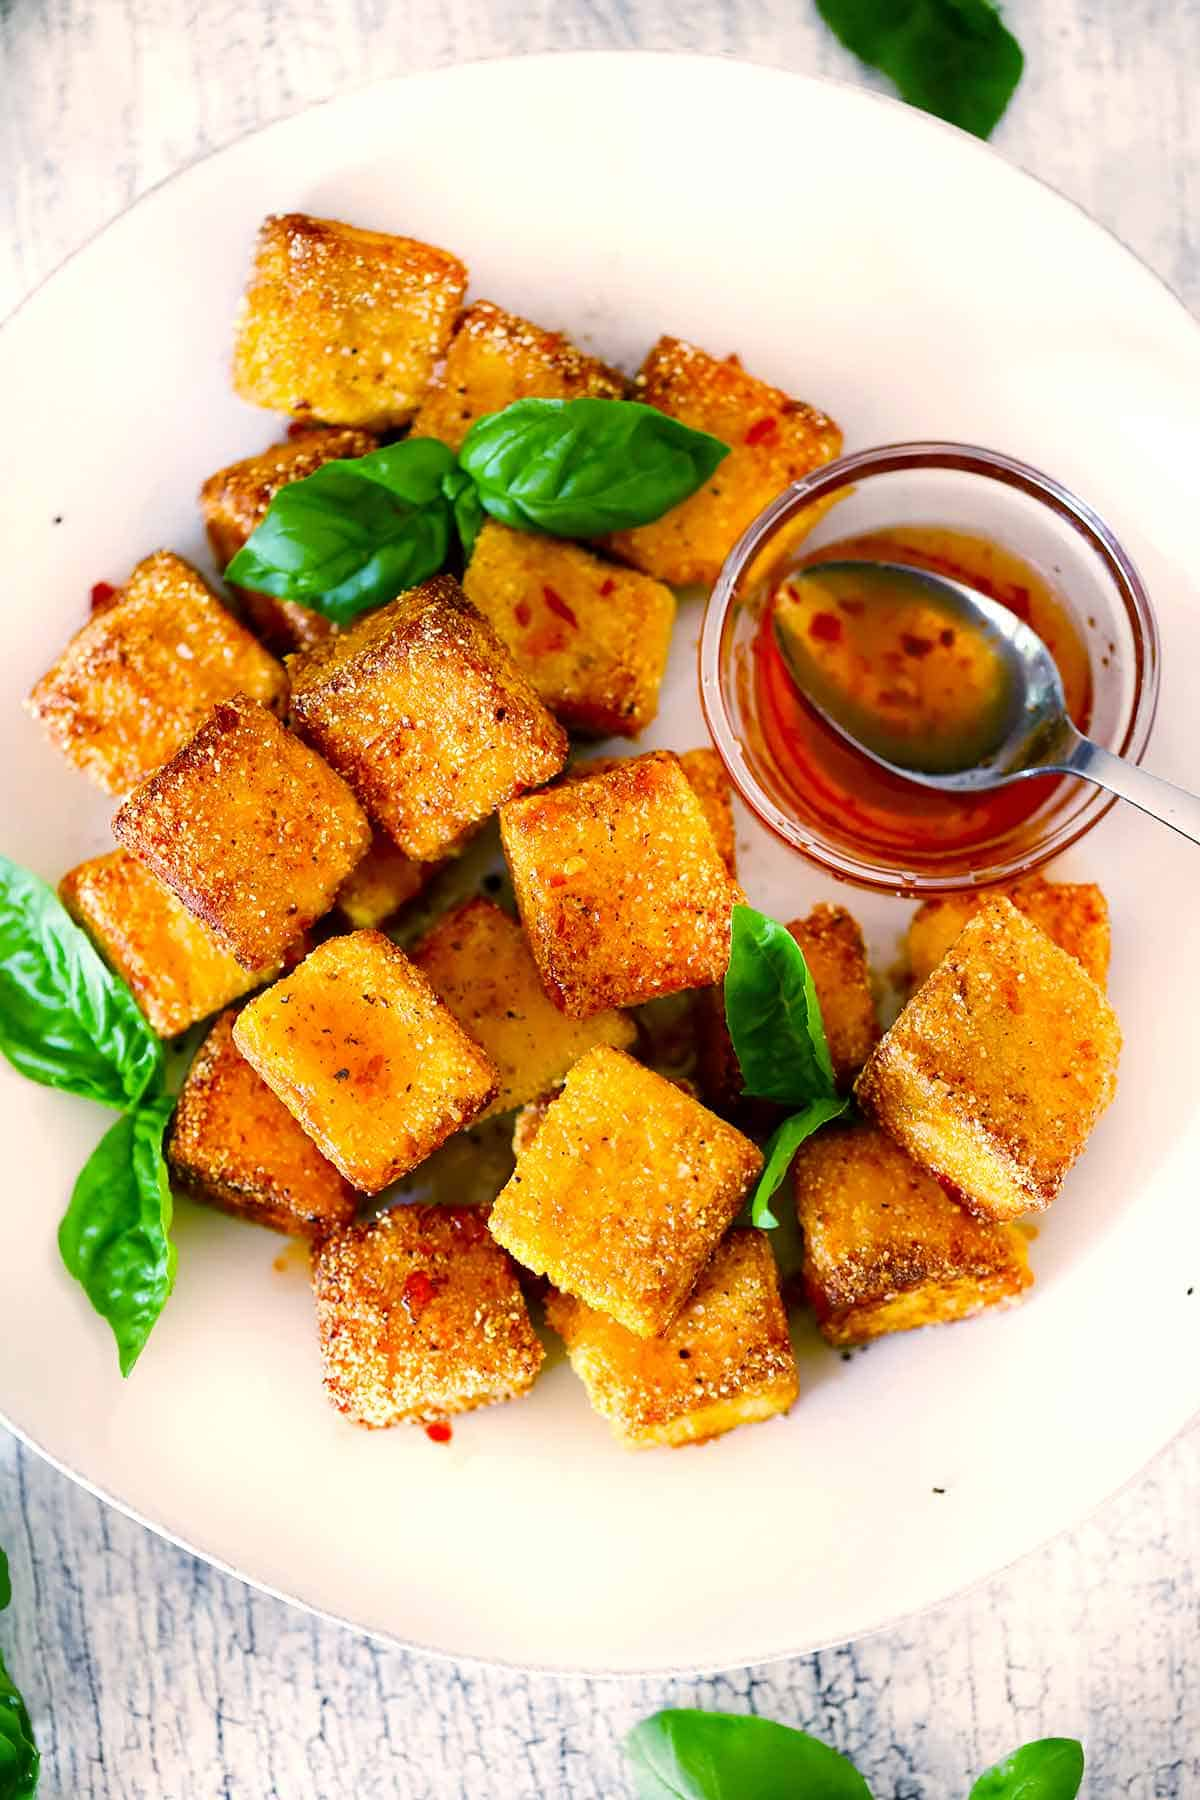 Overhead photo of a plate of fried halloumi garnished with basil with hot spicy honey on the side.